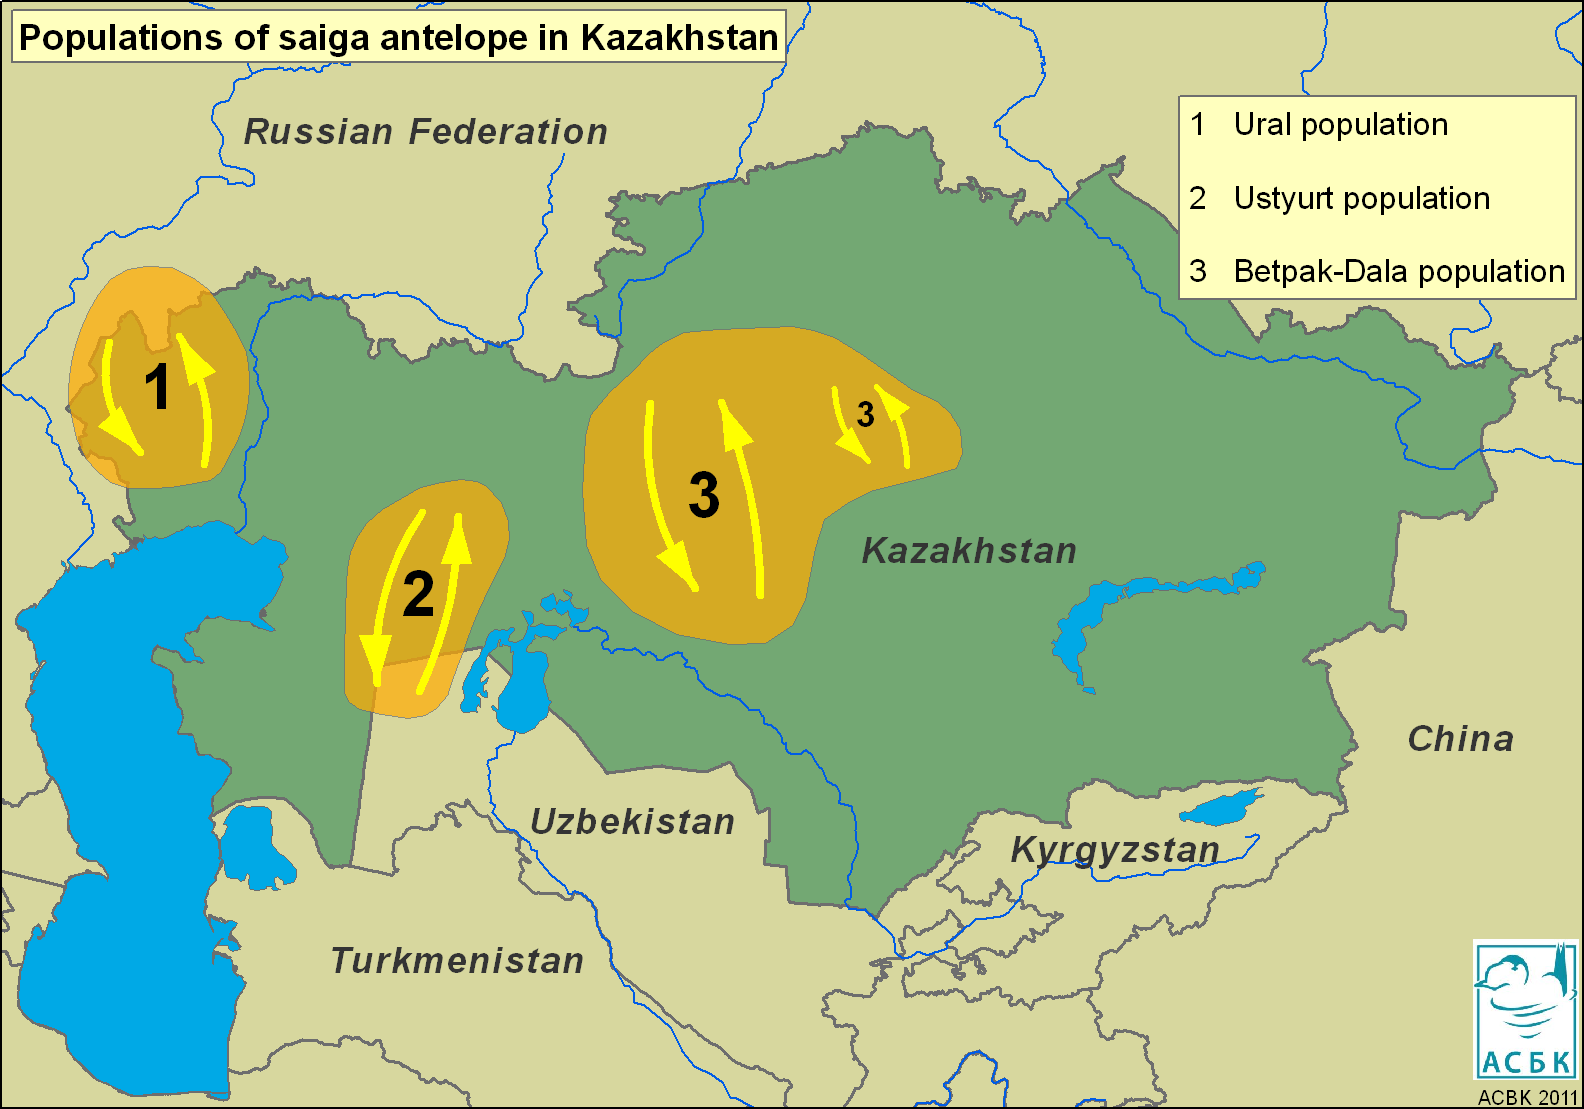 Saiga distribution map. Photo by Steffen Zuther.